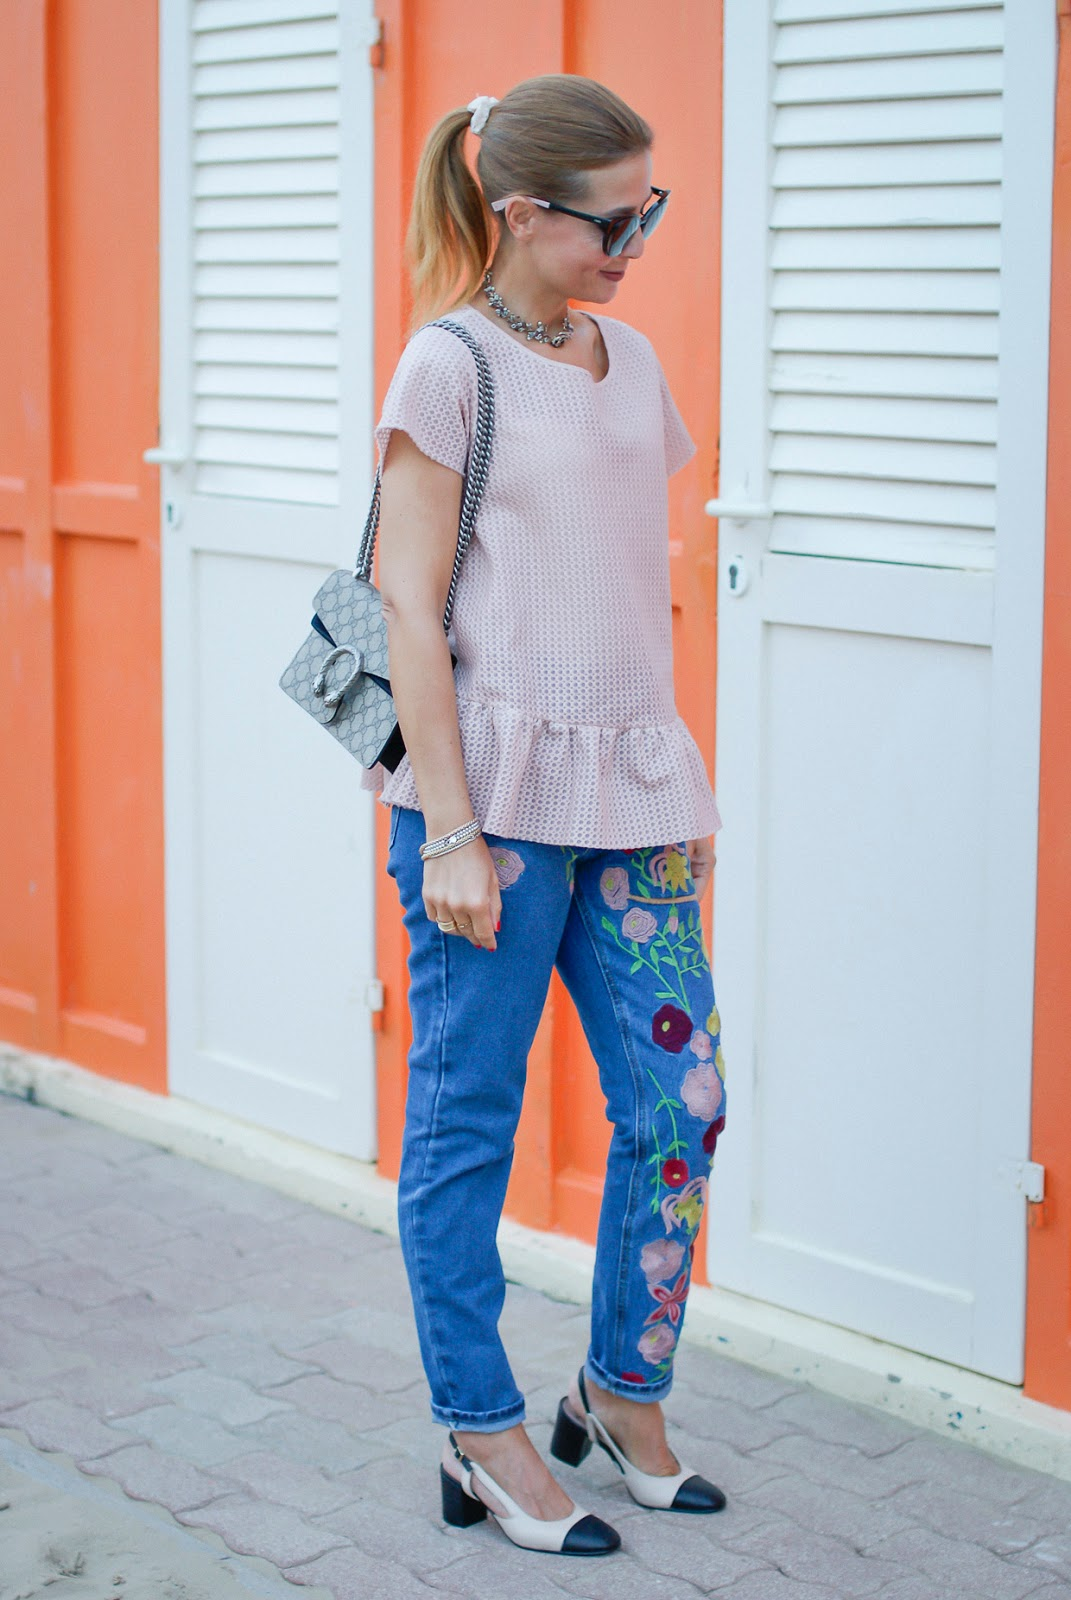 Embroidered jeans on Fashion and Cookies fashion blog, fashion blogger style